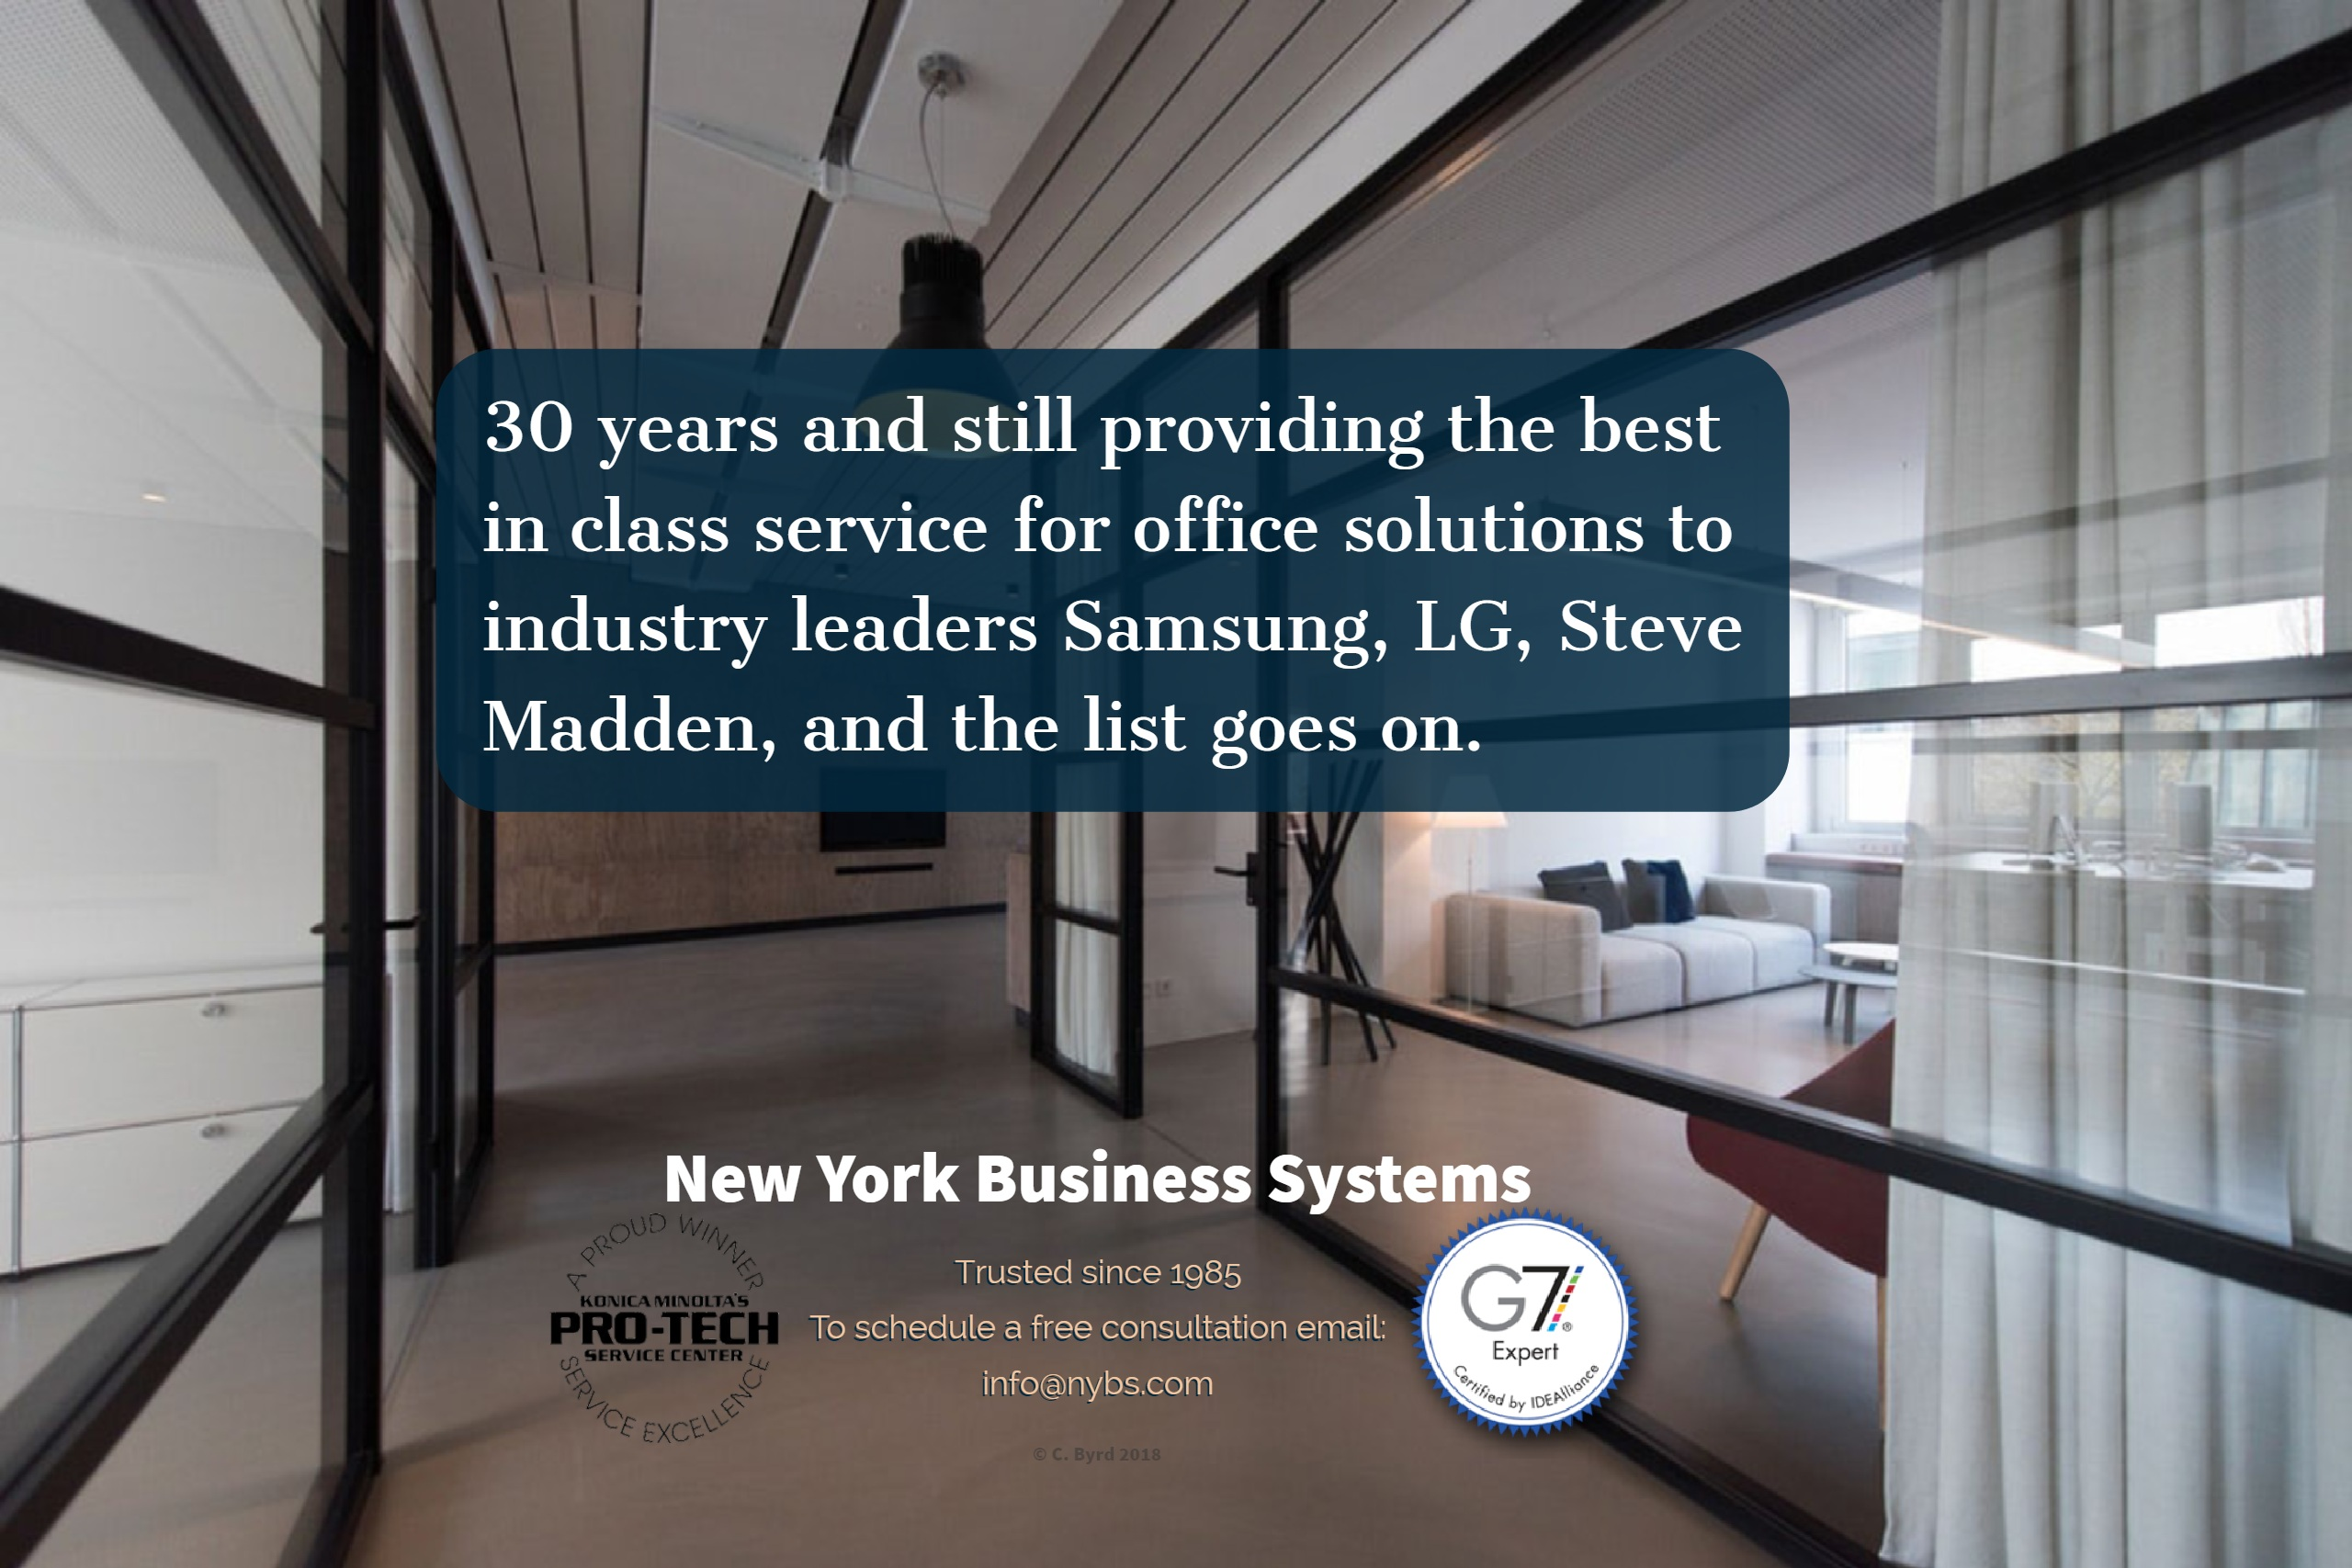 New York Business Systems Blog intro